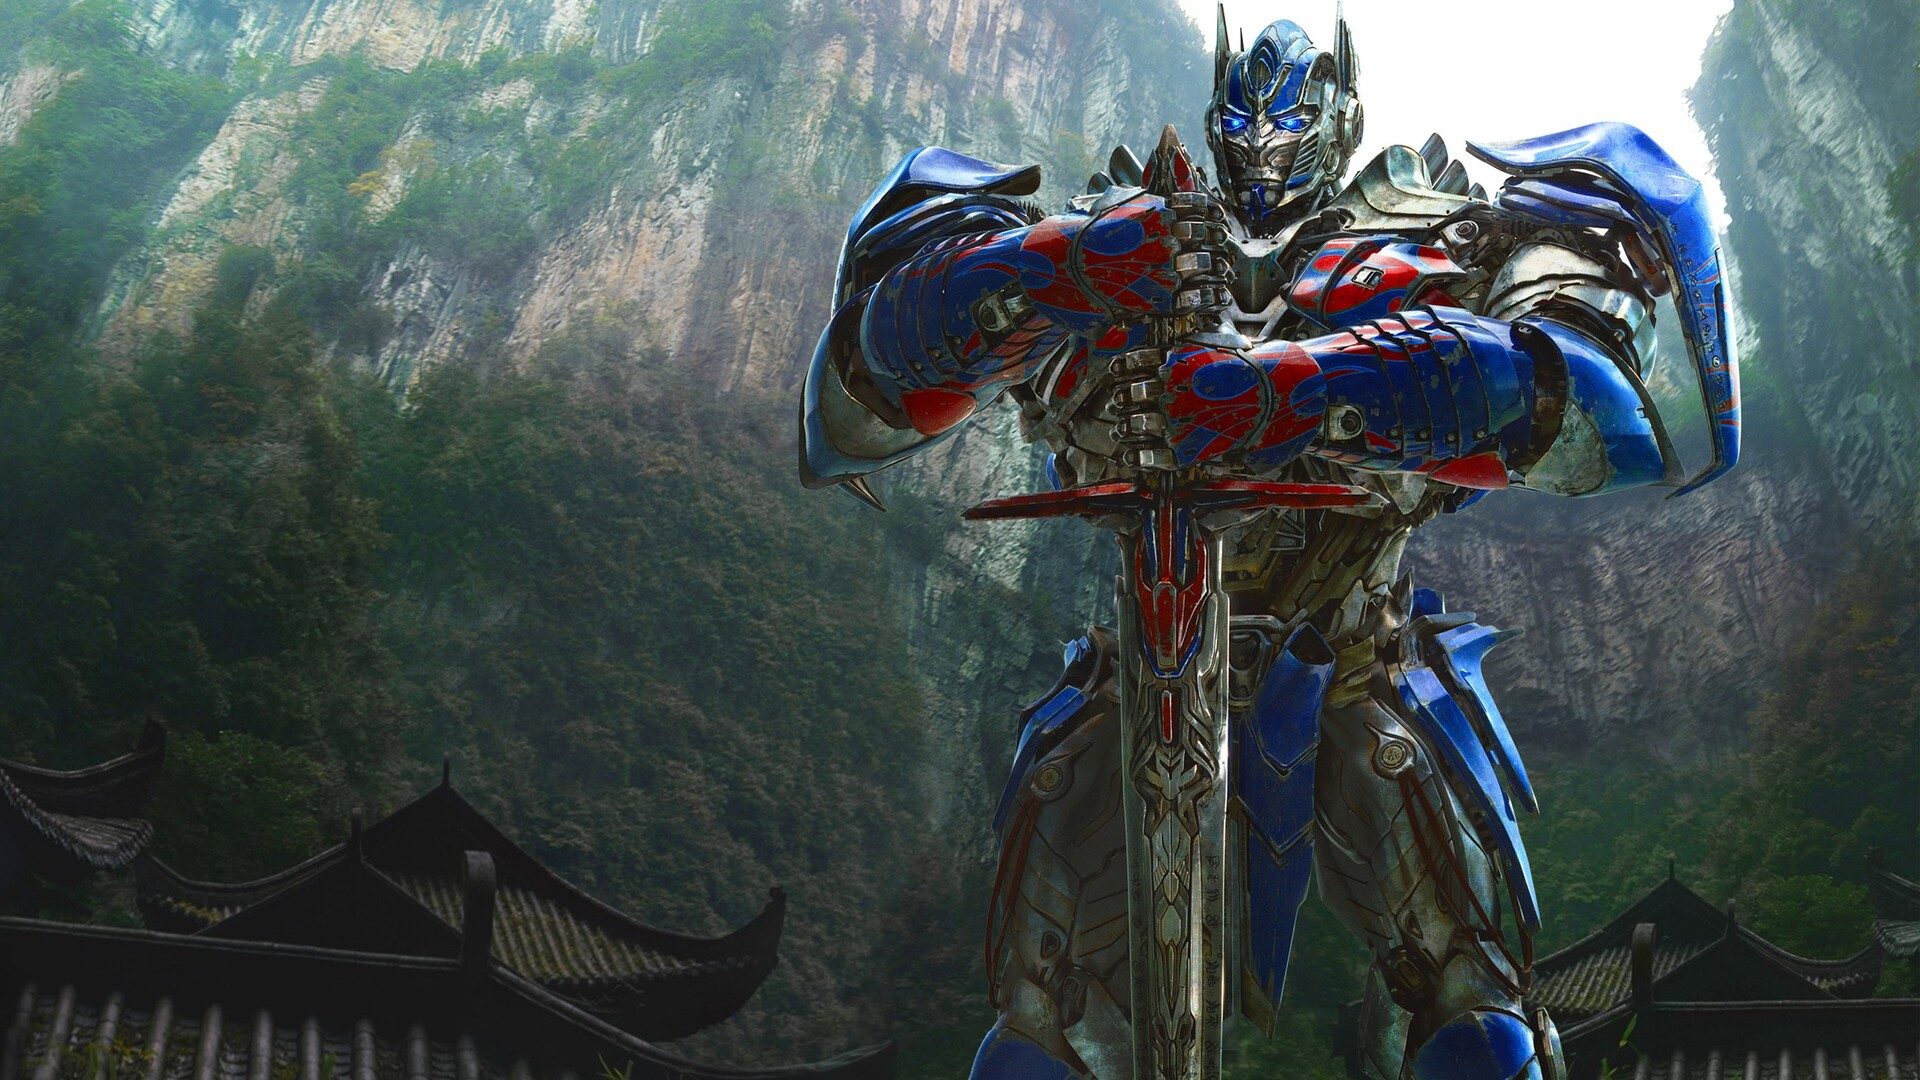 optimus-prime-in-transformers.jpg